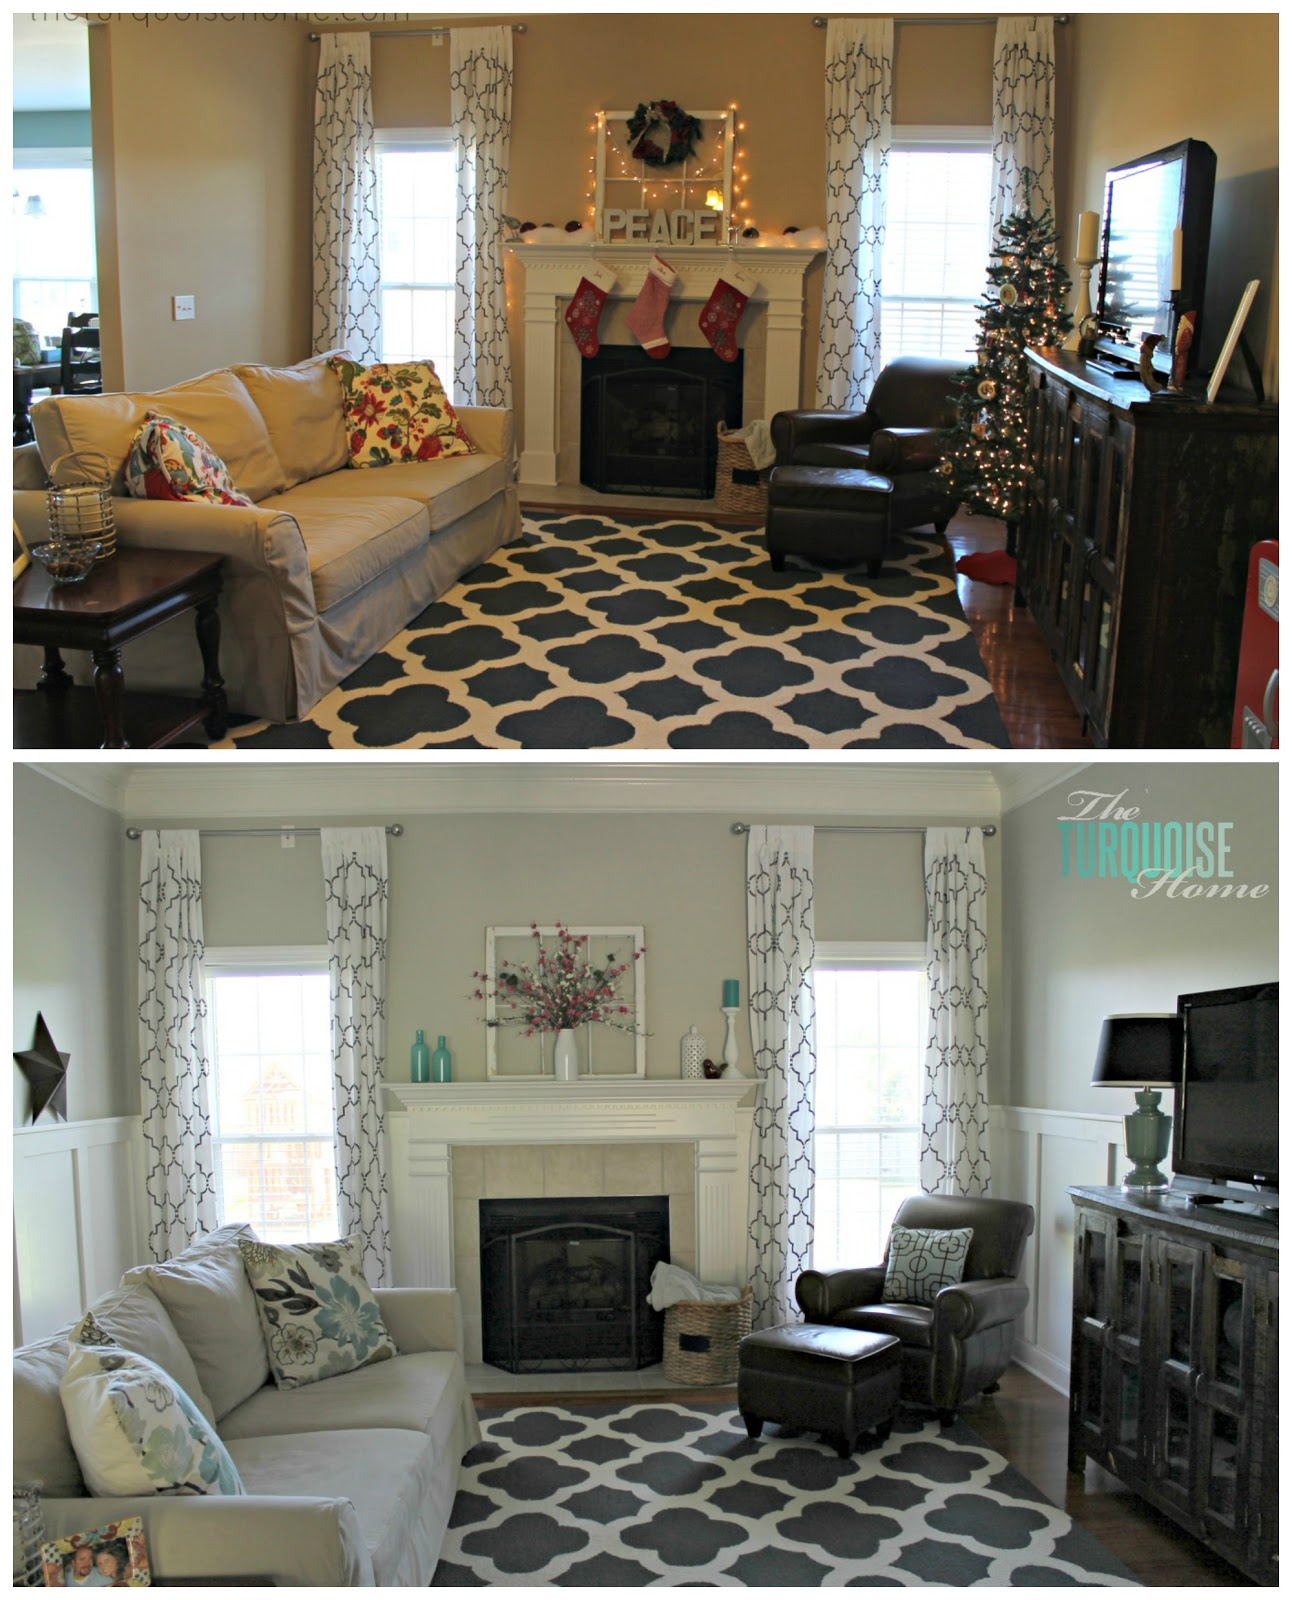 Living room makeover part 7 final reveal the for Living room makeovers